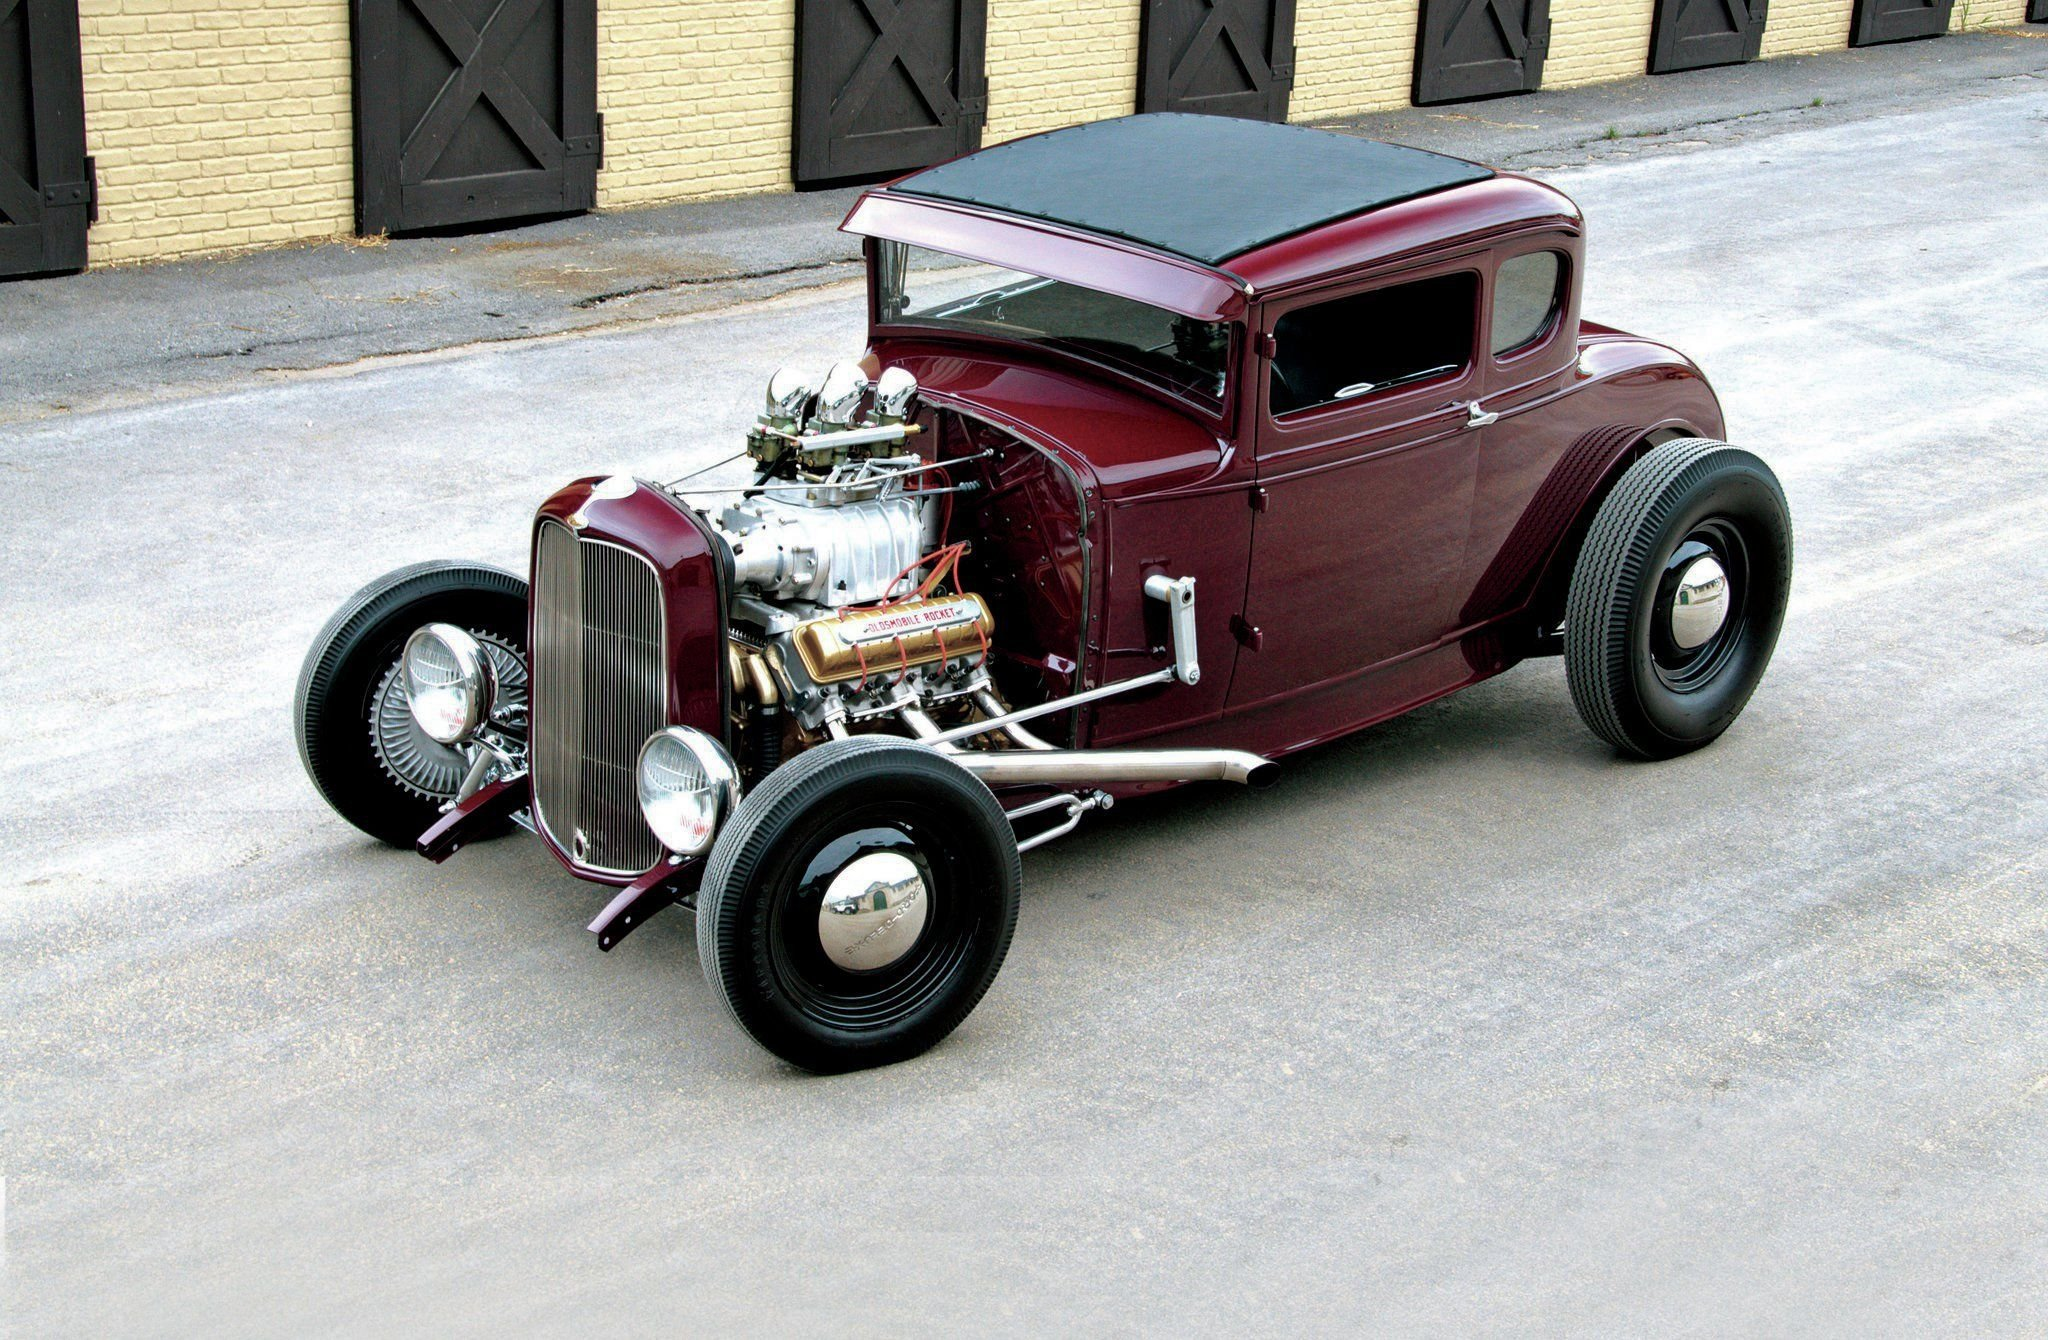 1930 ford model a coupe five window hot rod street custom for 1930 model a 5 window coupe for sale